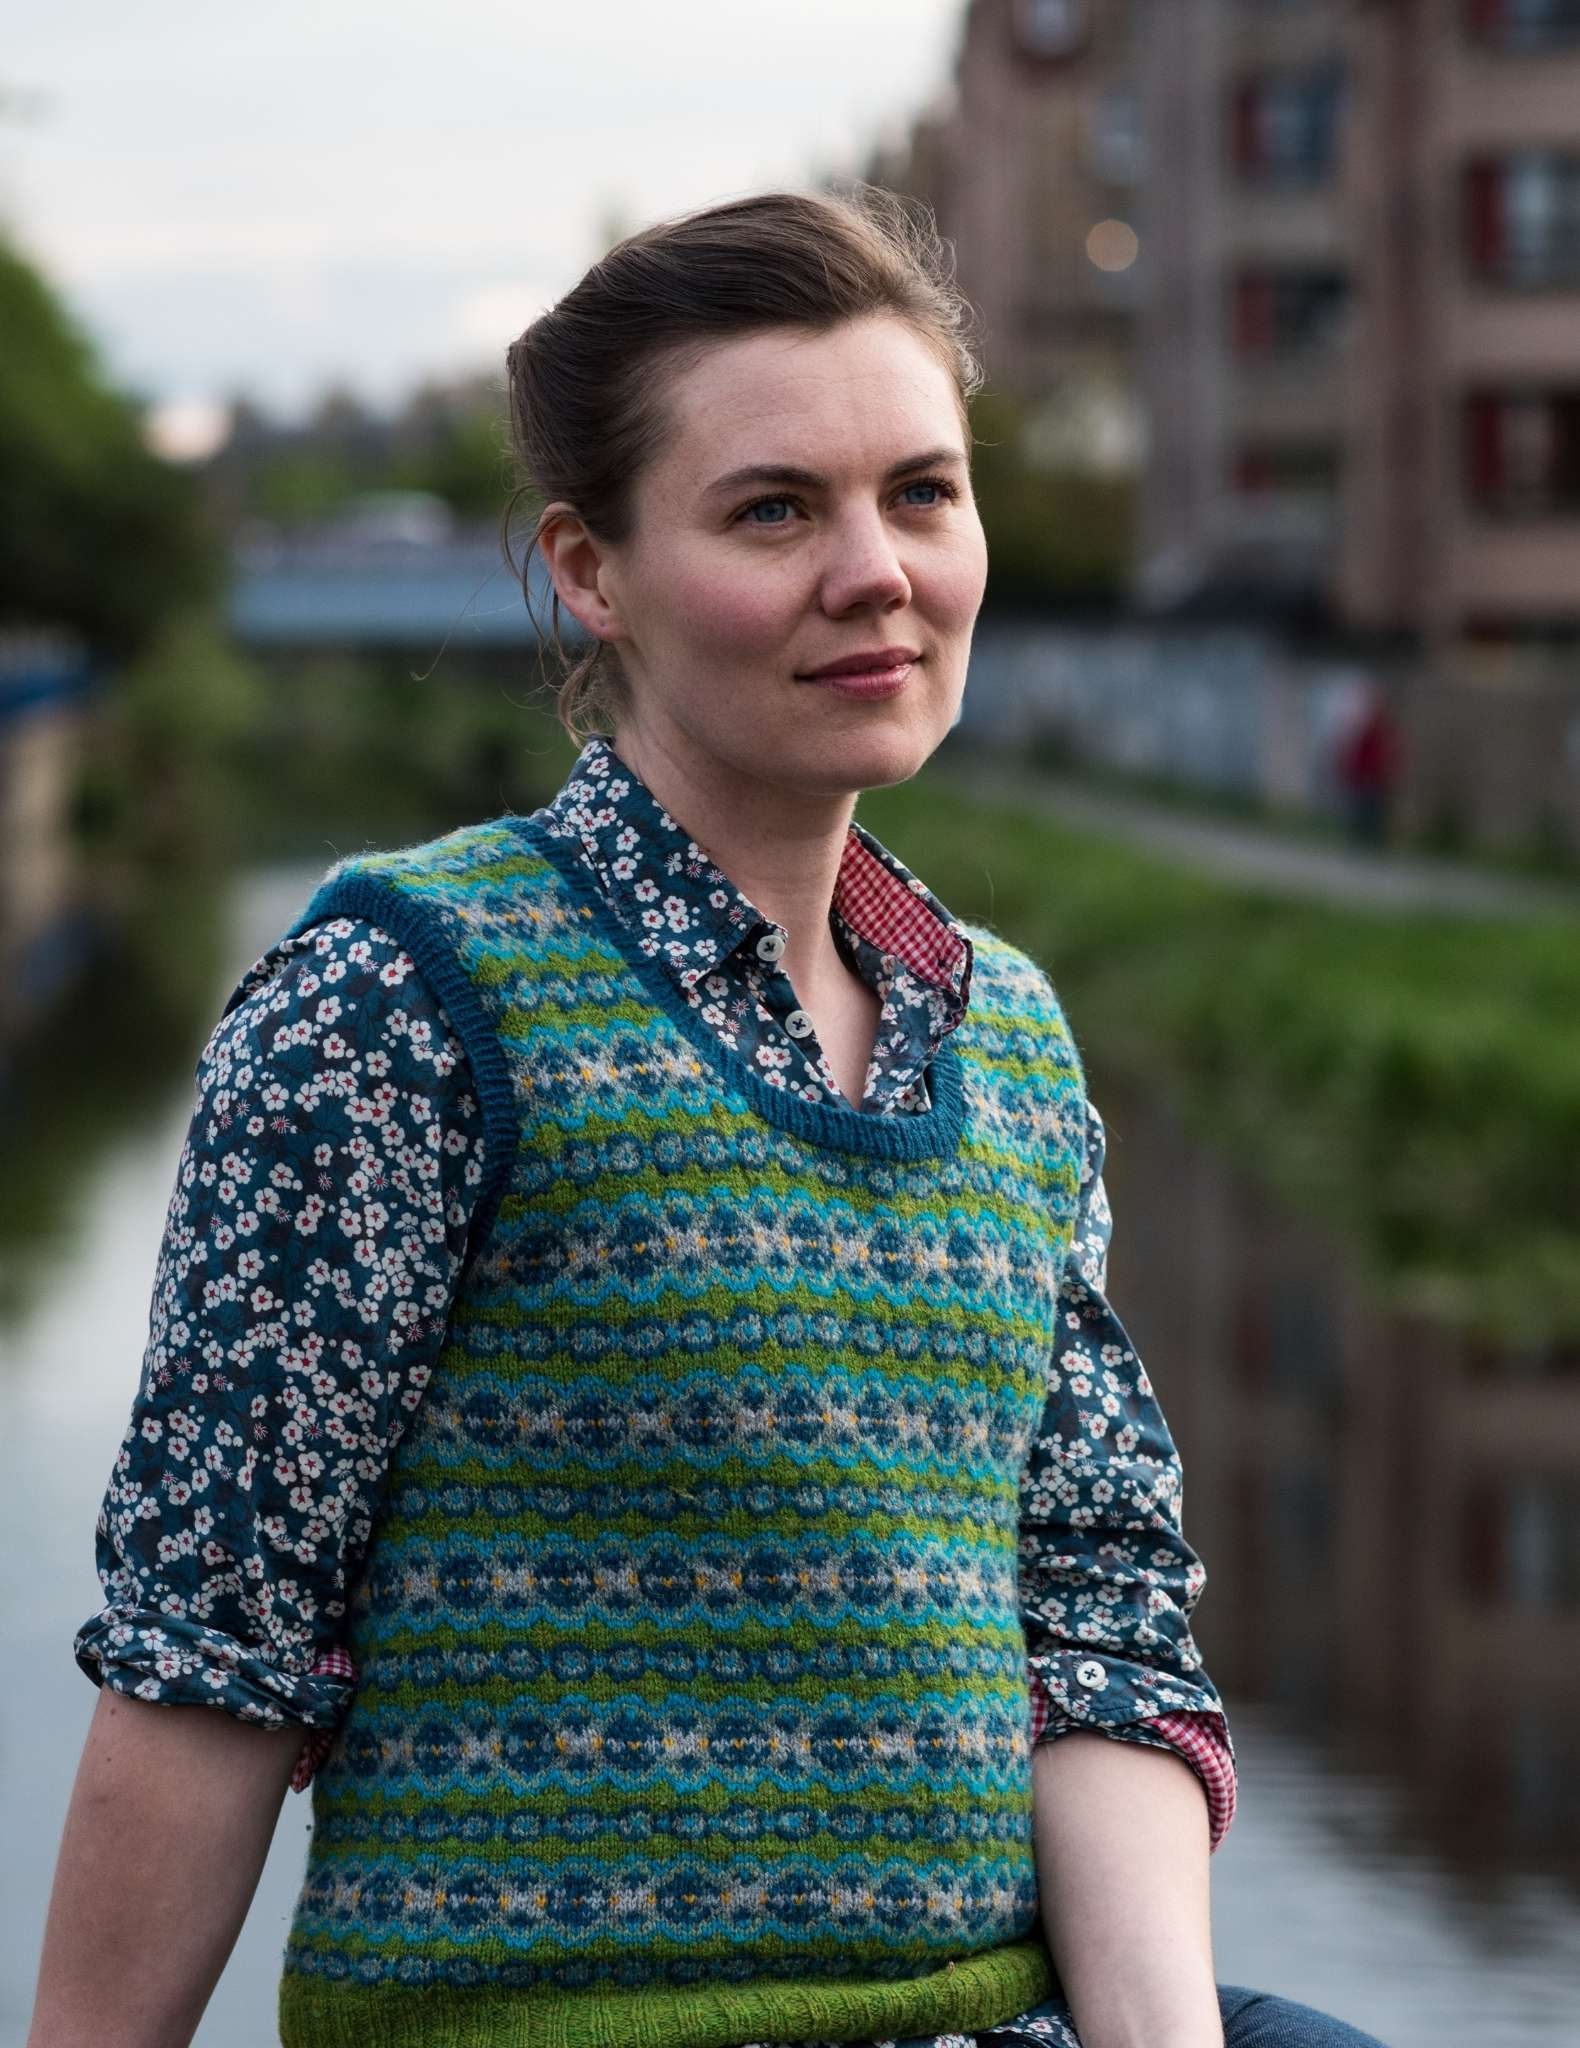 a young white woman wears a colourwork vest in greens and blues over a patterned blue shirt. Her hair is tied back and behind is the water of a canal and buildings to the side.